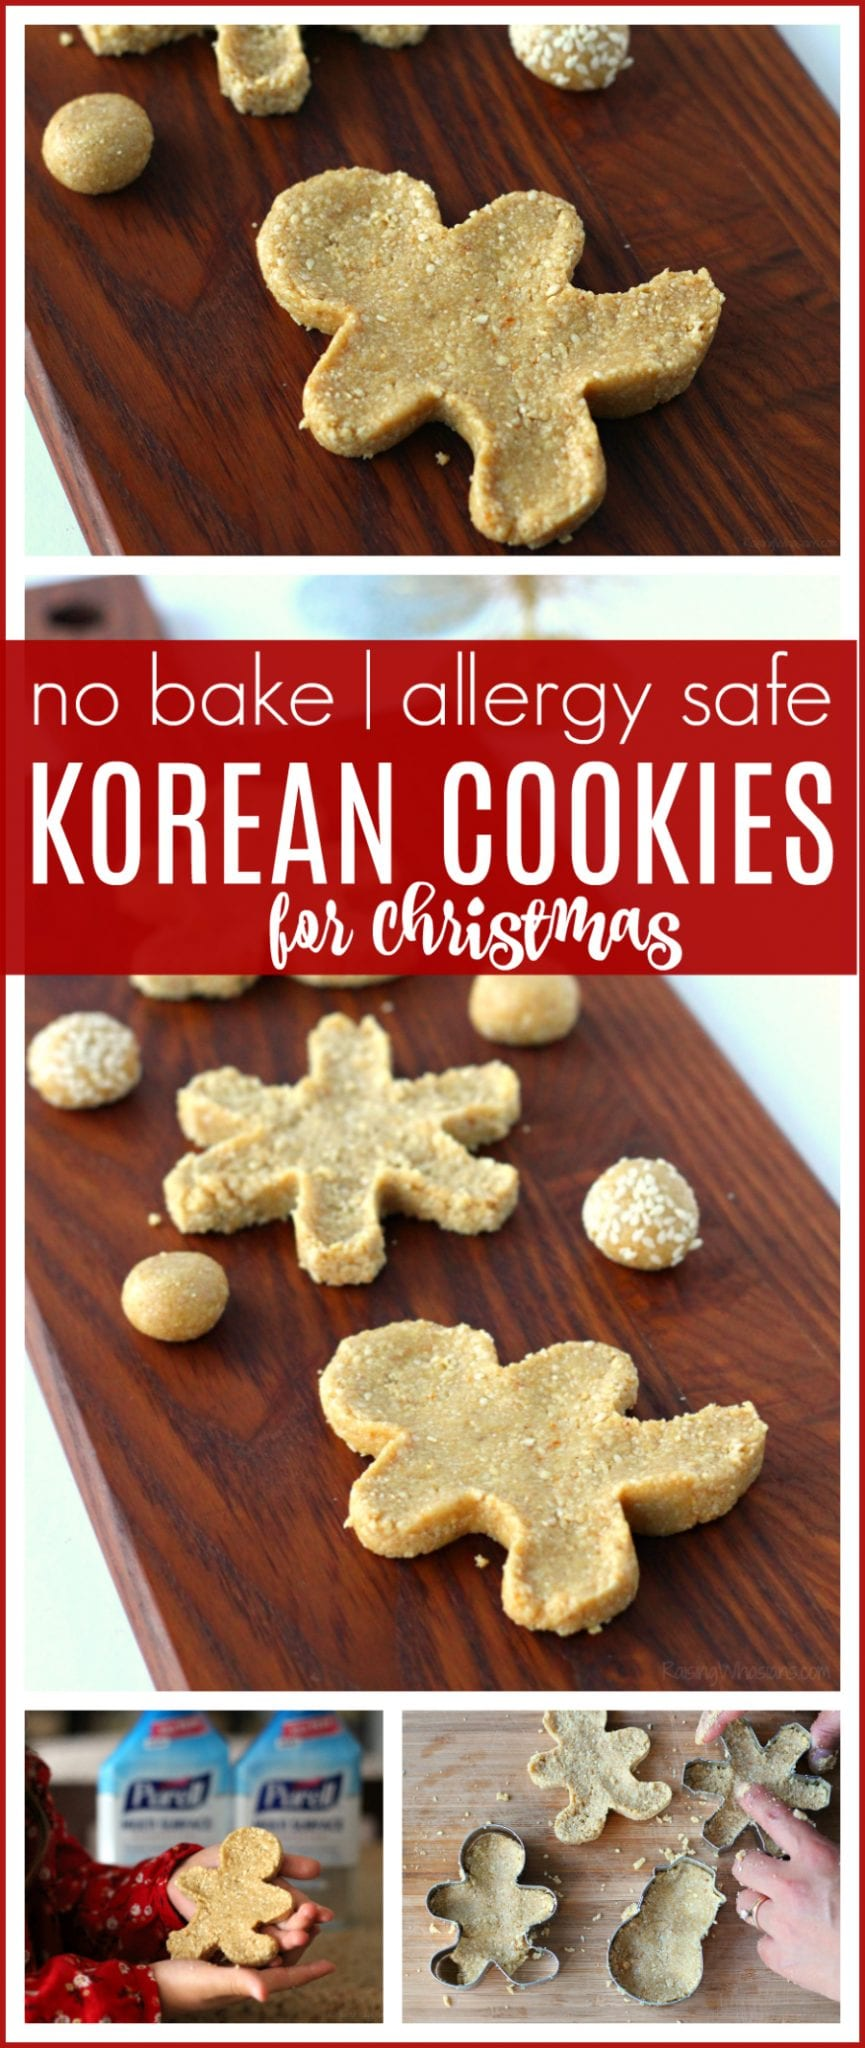 Korean cookies recipe pinterest